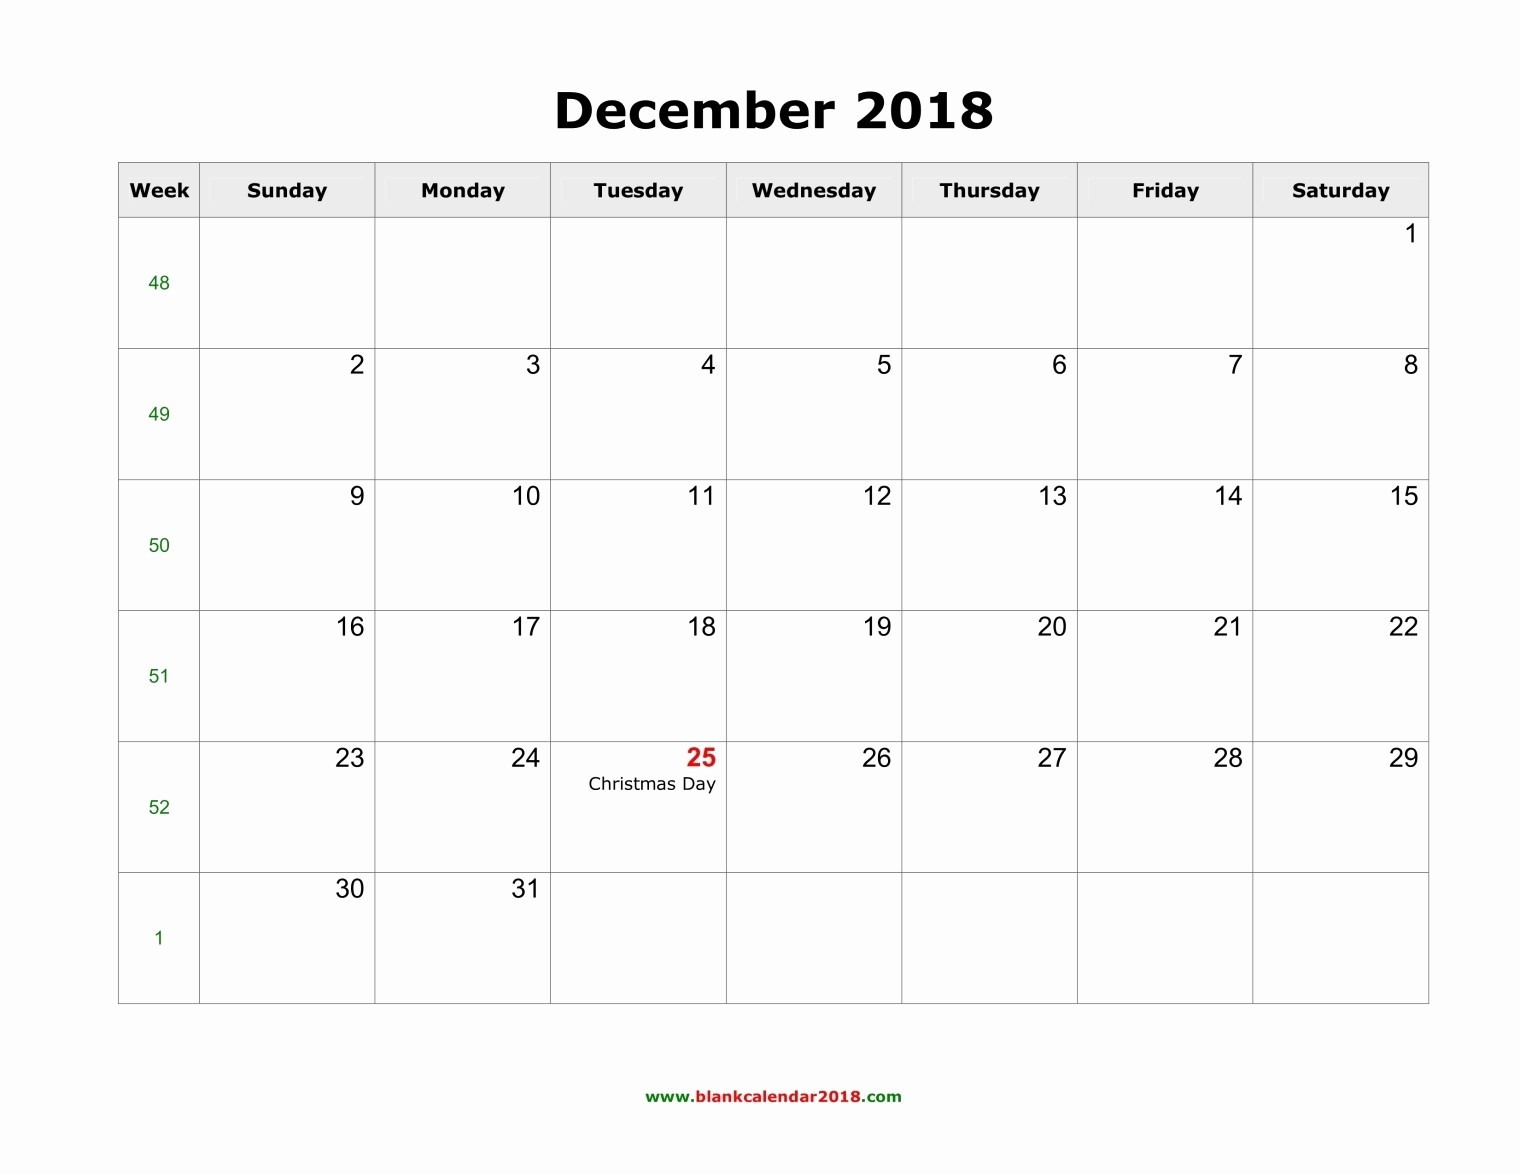 Blank Calendar Template December 2018 Inspirational Blank Calendar for December 2018